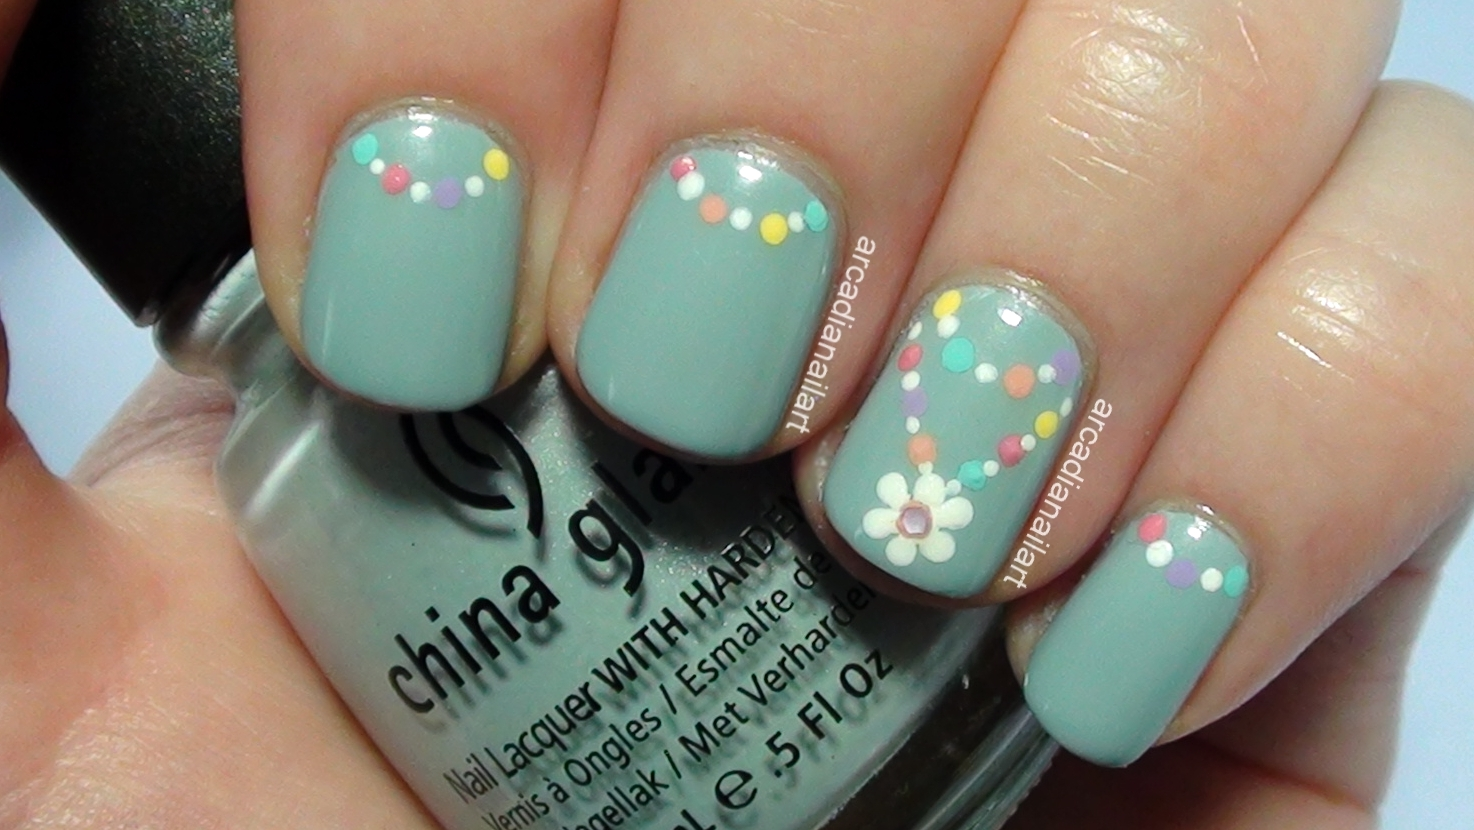 ArcadiaNailArt: Simple Flower Chain Nail Art